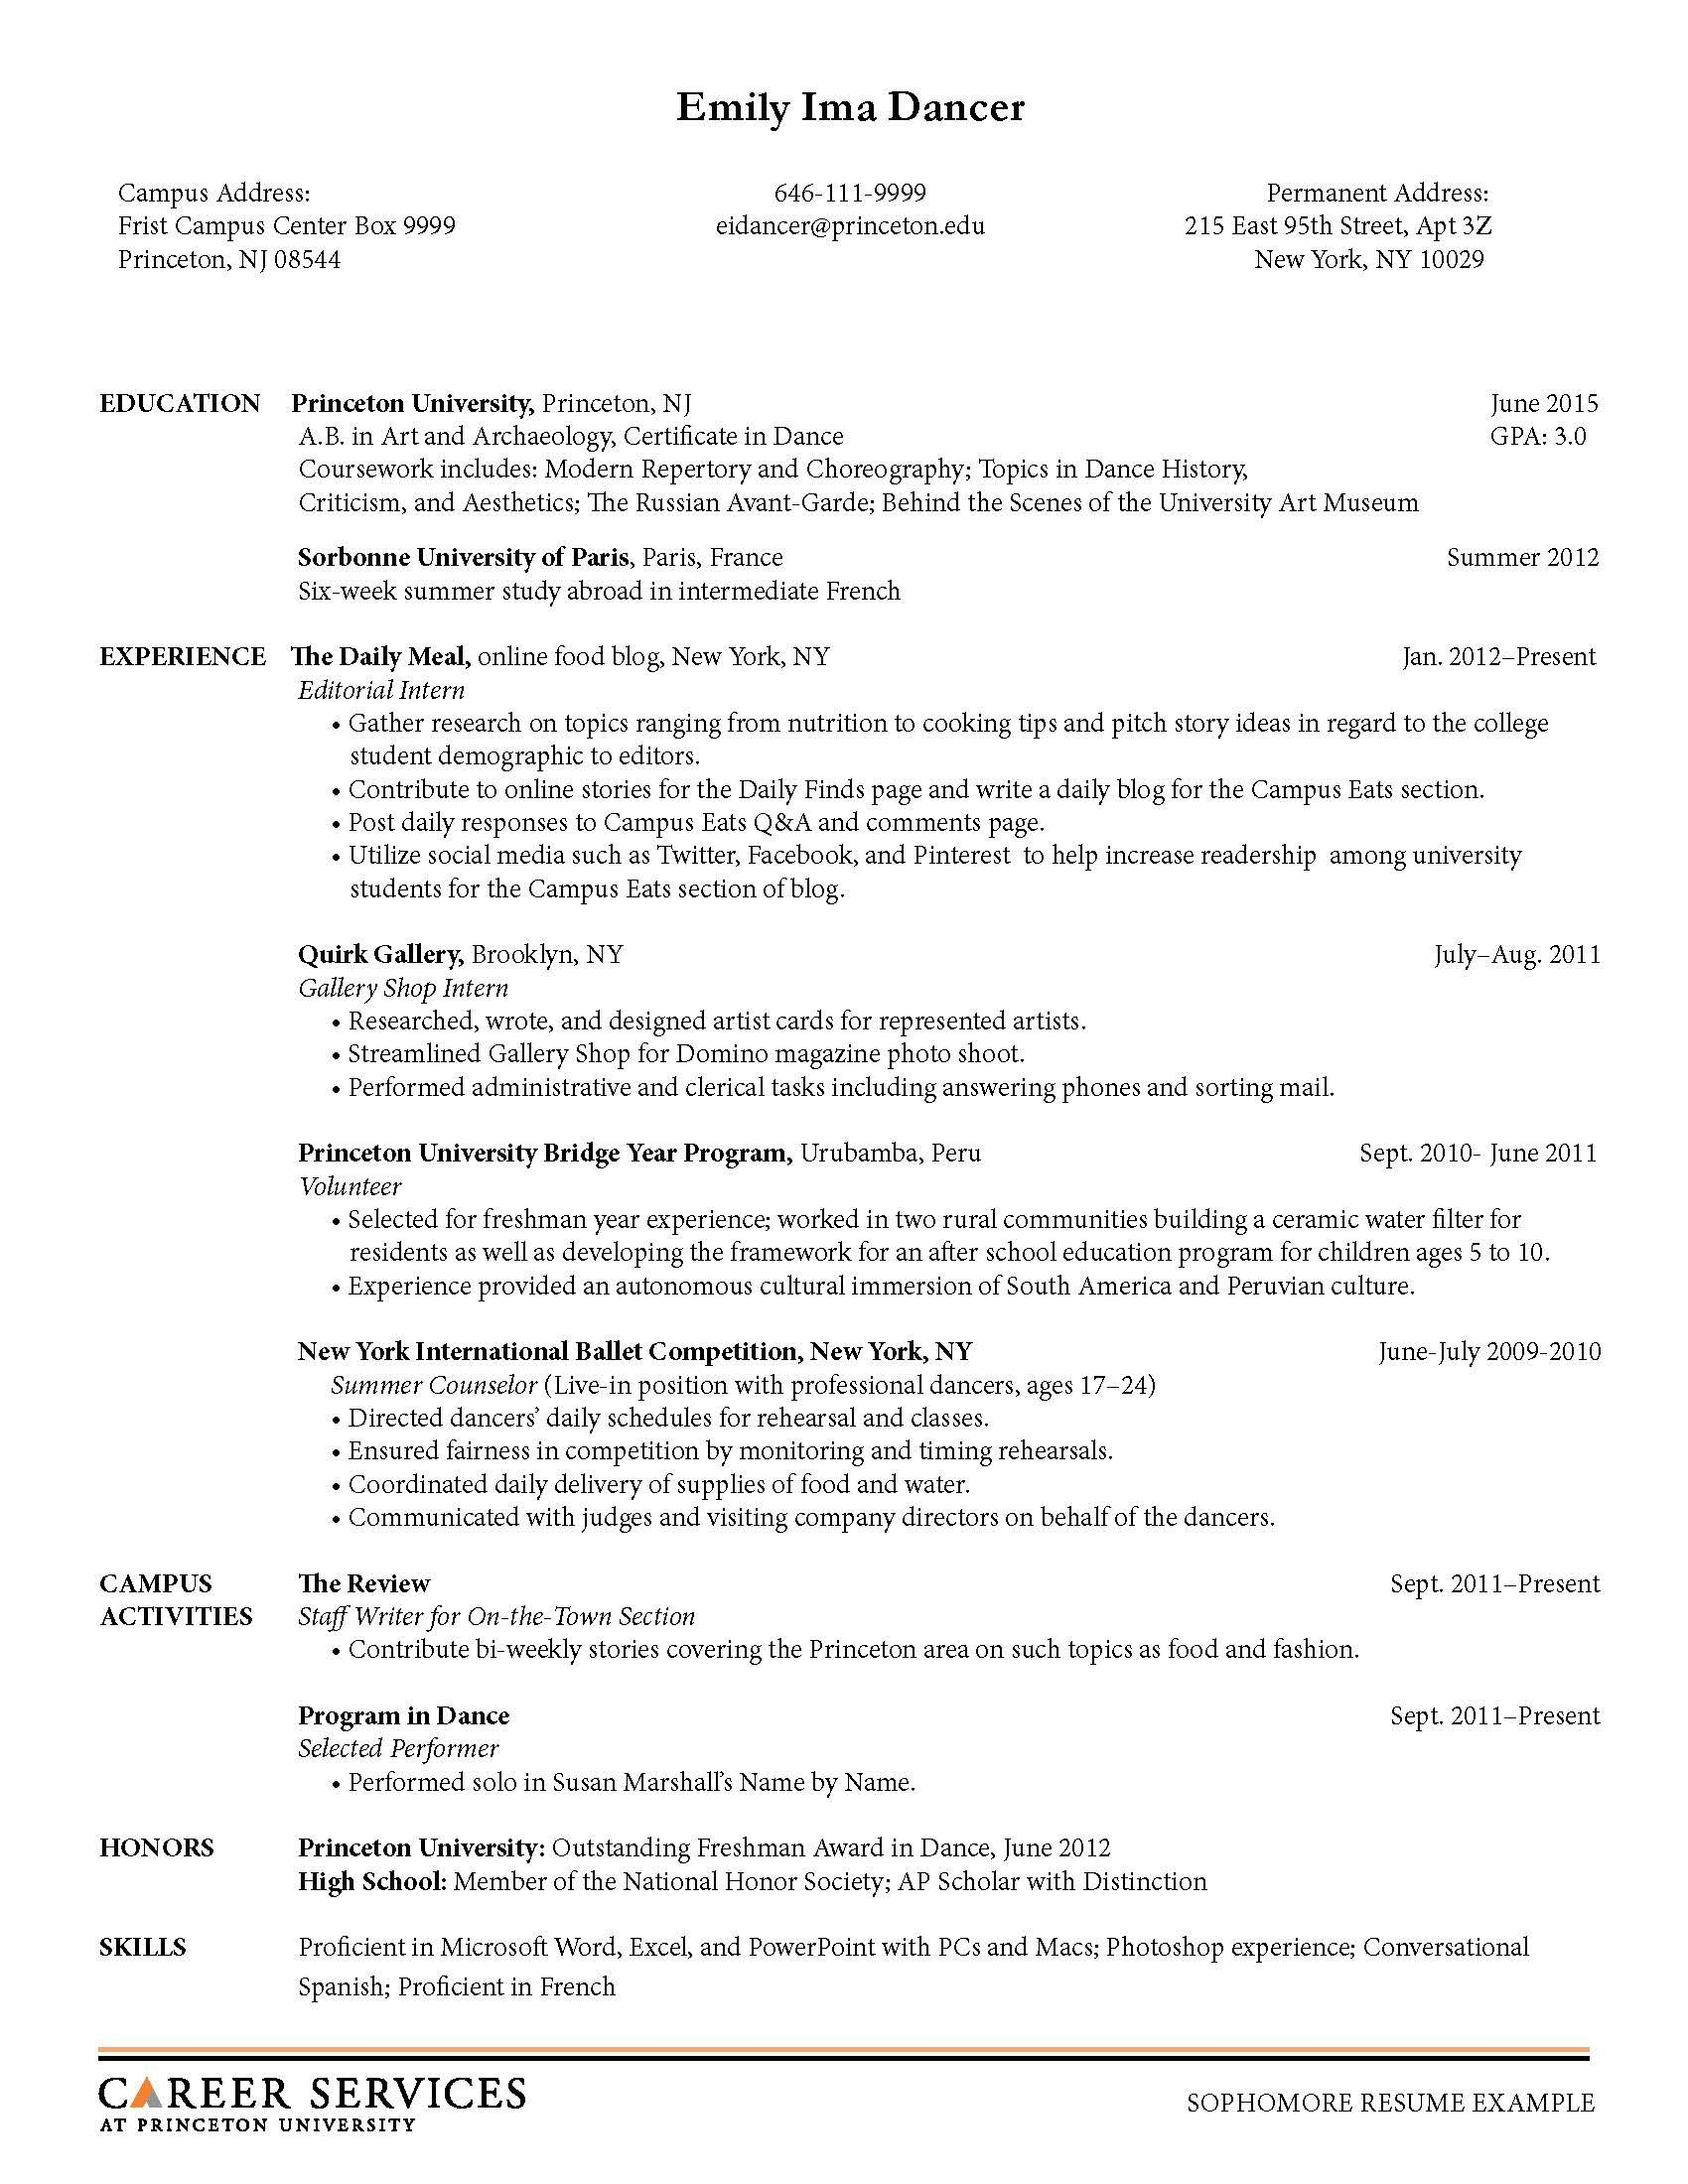 Picnictoimpeachus  Surprising Sample Resume Resume And Career On Pinterest With Likable Resume For College Students Still In School Besides Where Can I Get A Resume Made Furthermore Truck Driver Resume Template With Easy On The Eye Audio Visual Technician Resume Also Resume For Nanny Position In Addition Free Resume Form And Resume Format On Word As Well As What Are The Different Types Of Resumes Additionally Latex Resume Tutorial From Pinterestcom With Picnictoimpeachus  Likable Sample Resume Resume And Career On Pinterest With Easy On The Eye Resume For College Students Still In School Besides Where Can I Get A Resume Made Furthermore Truck Driver Resume Template And Surprising Audio Visual Technician Resume Also Resume For Nanny Position In Addition Free Resume Form From Pinterestcom